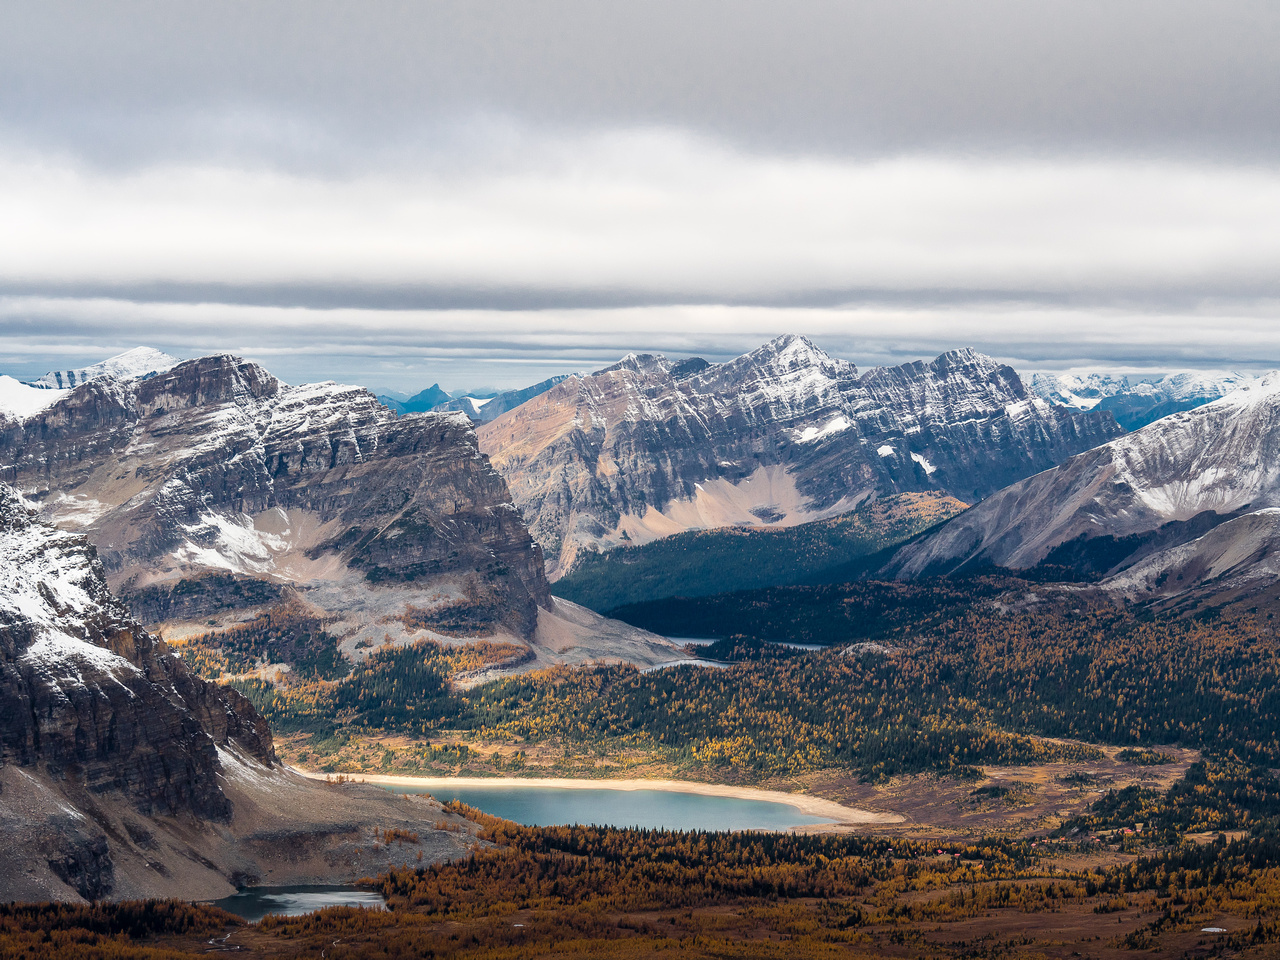 Pretty good views over Gog Lake (L) and Lake Magog past Sunburst Peaks (L) towards Indian Peak.